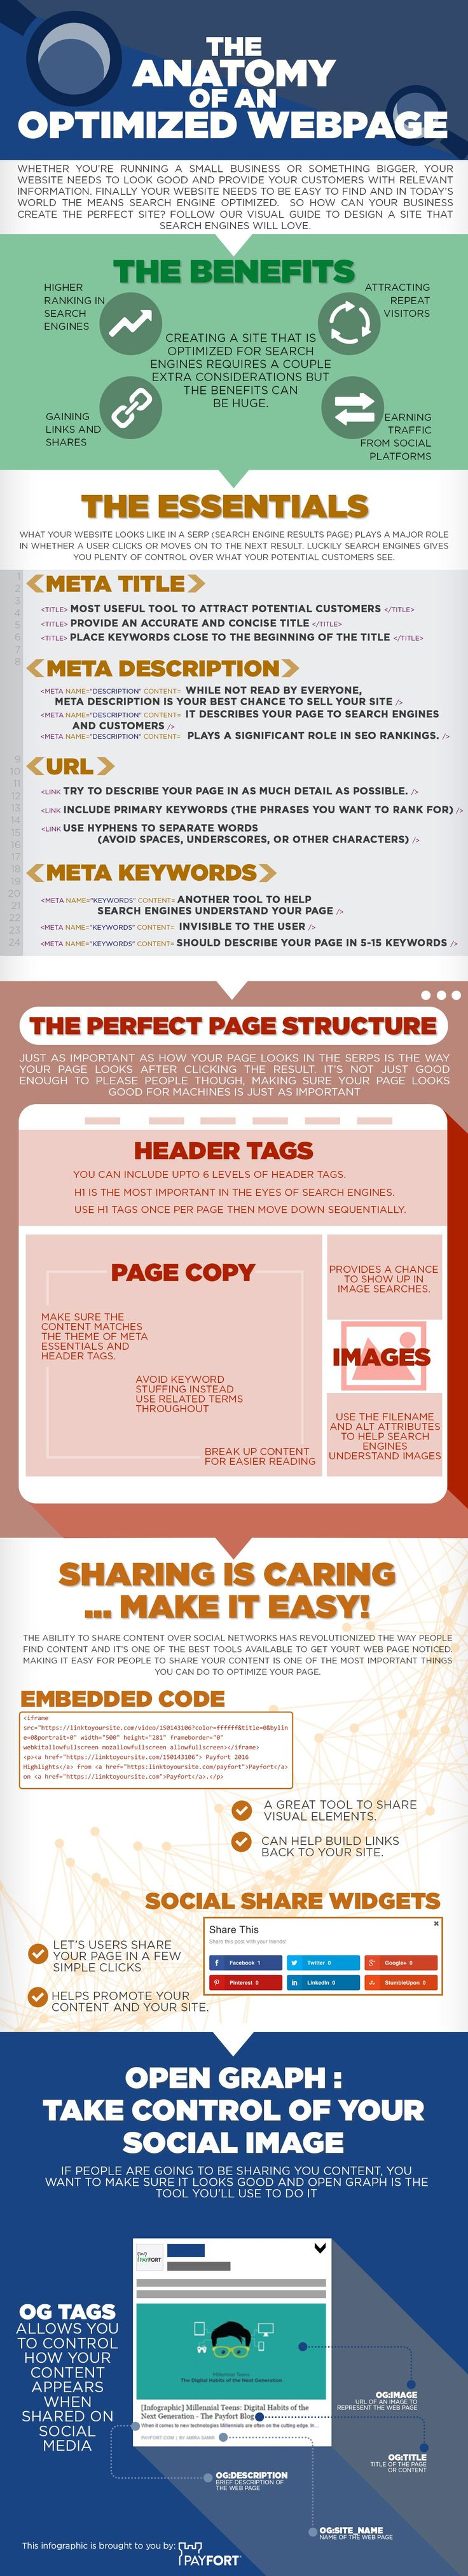 #SEO Tips for Beginners: The Anatomy of a Google Optimised Webpage #Infographic #Marketing